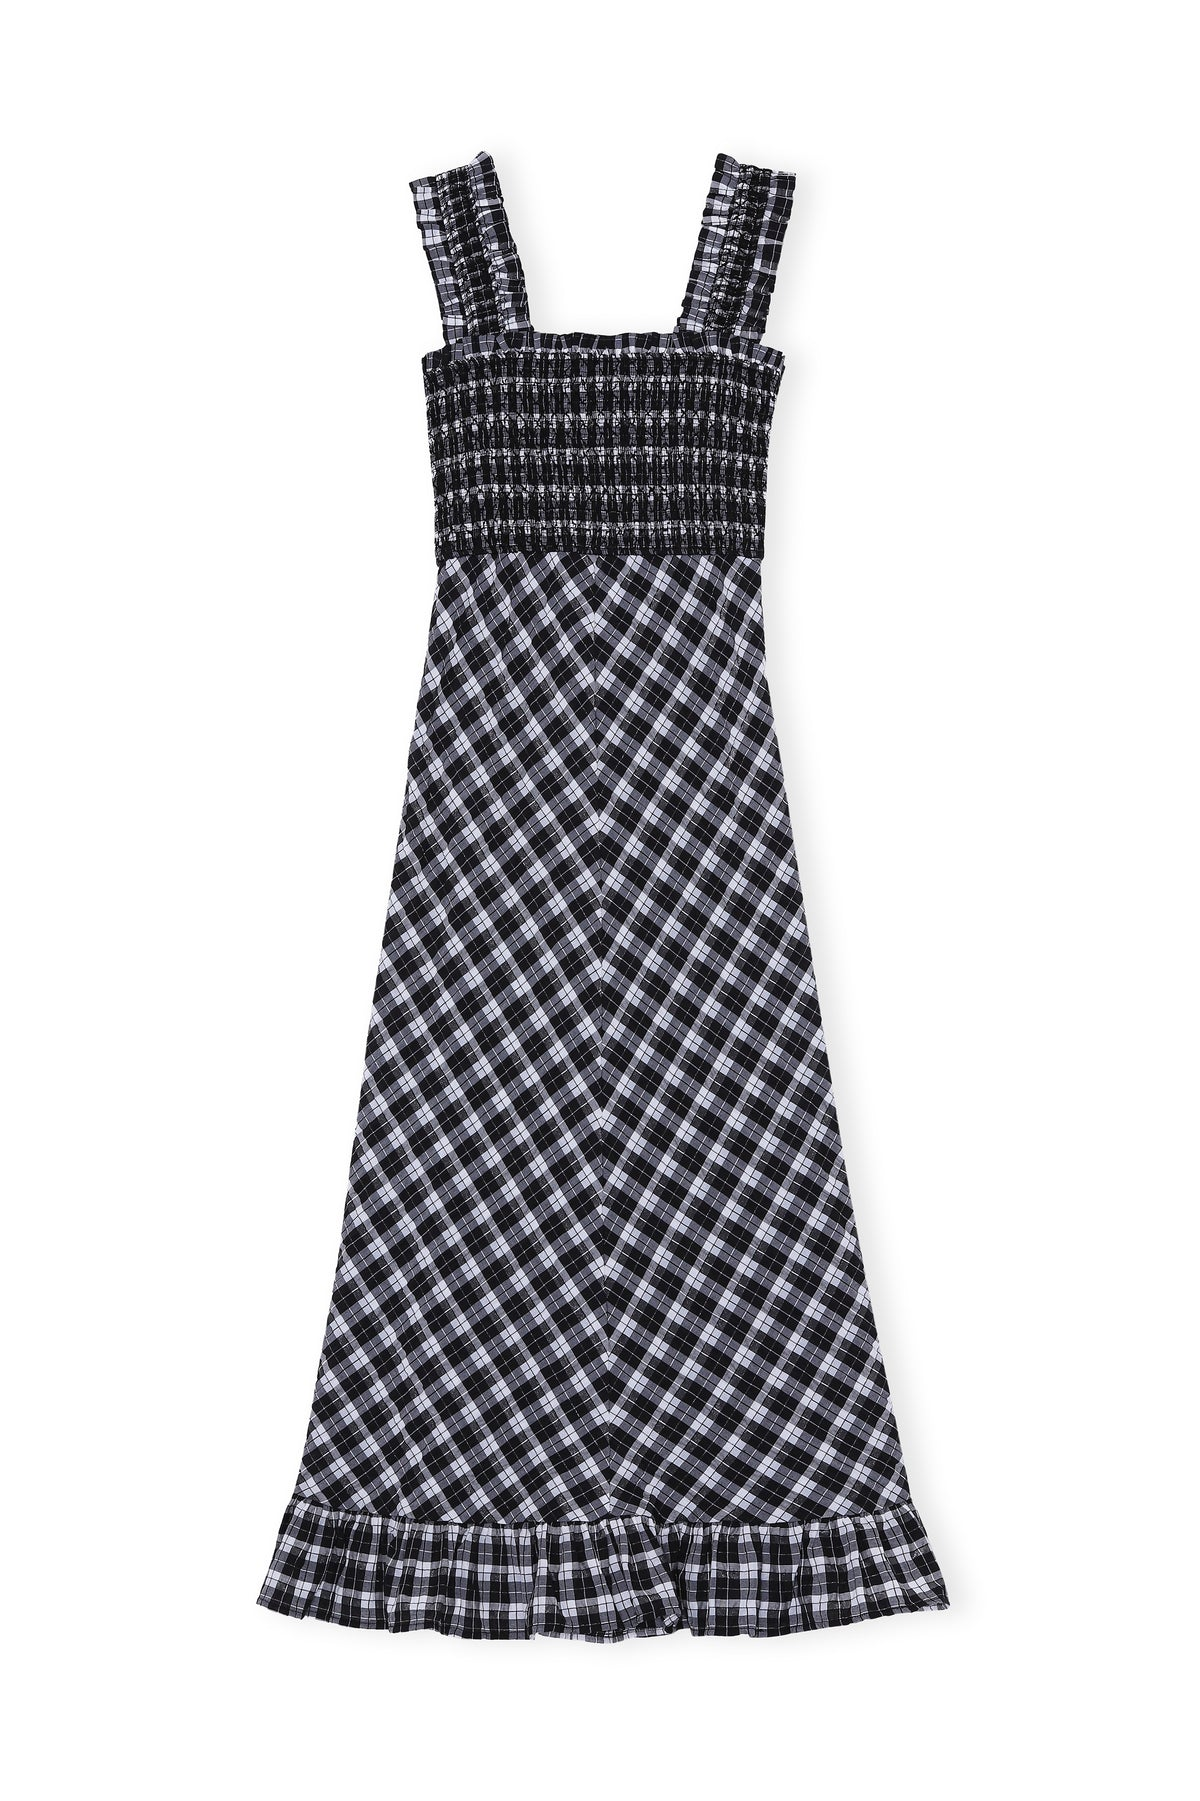 Seersucker Check Maxi Dress - Black